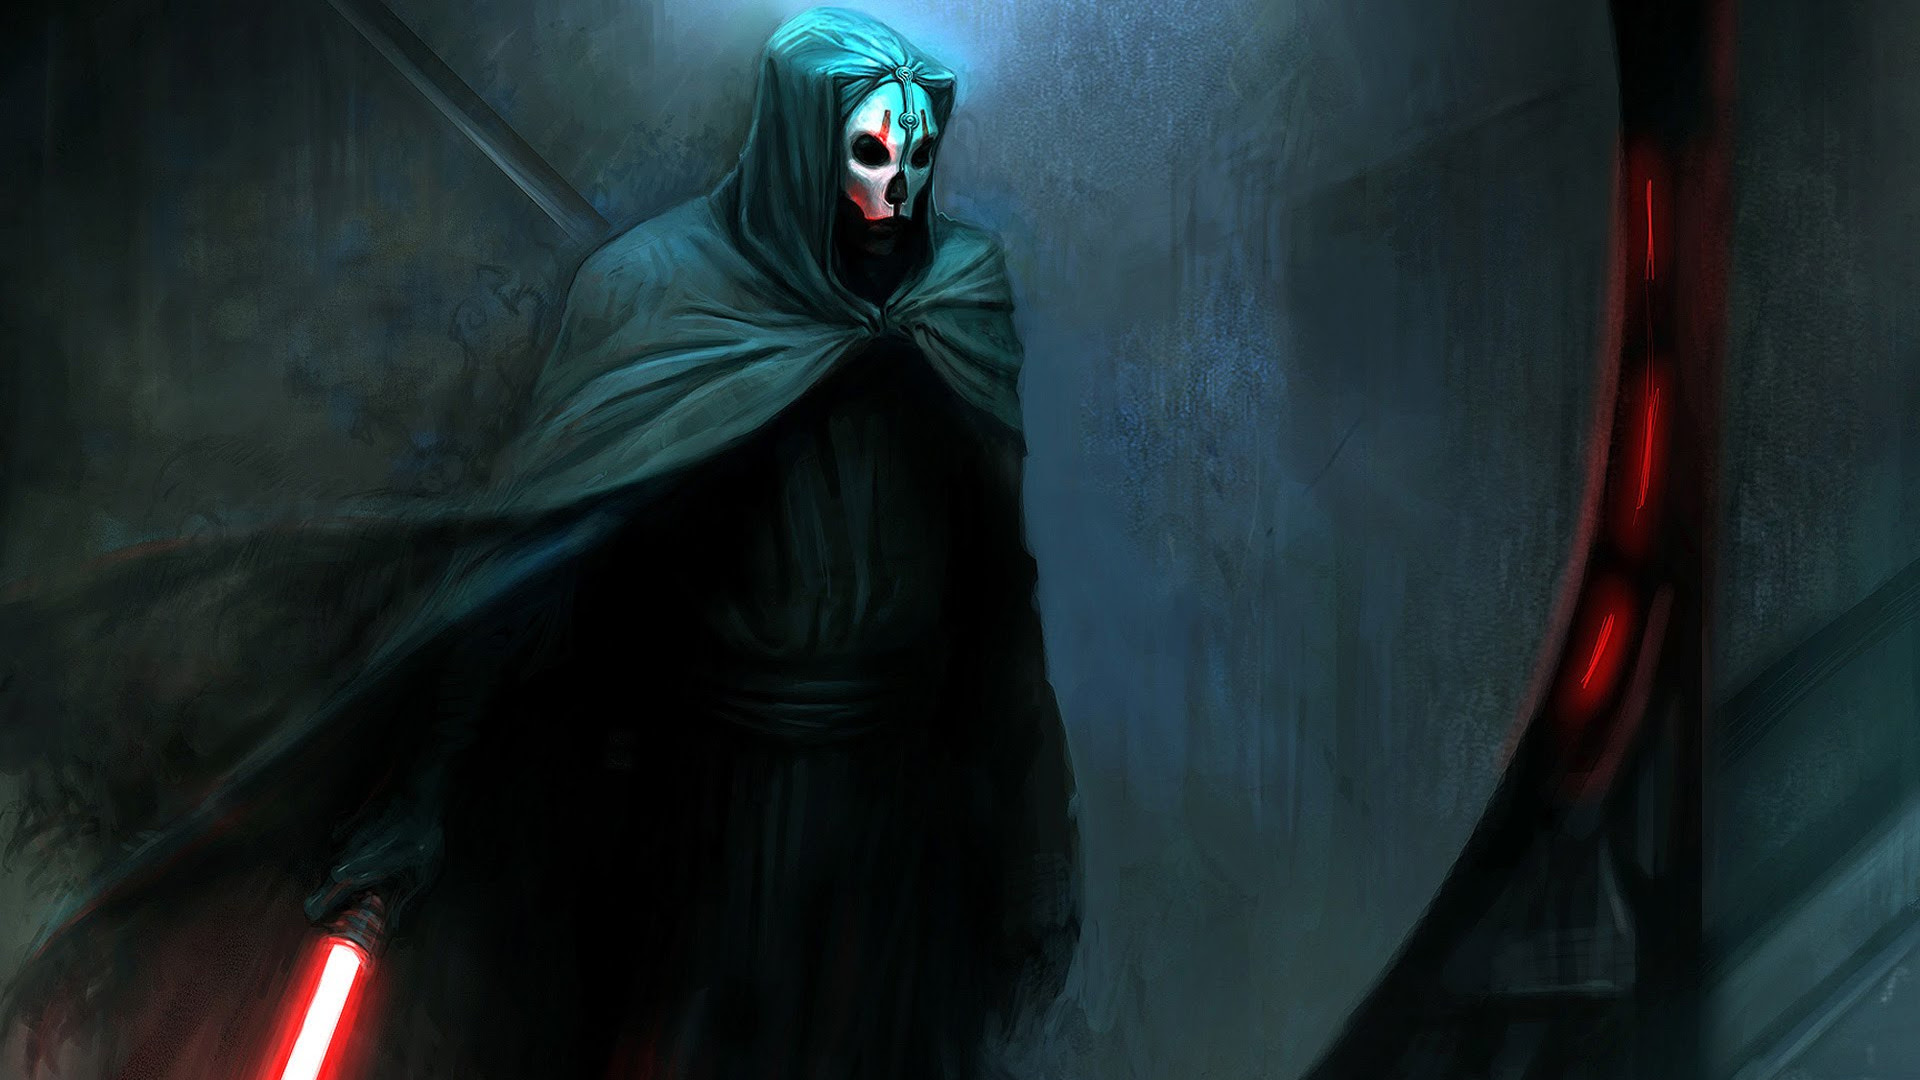 Kotor 2 Wallpapers 62 Images